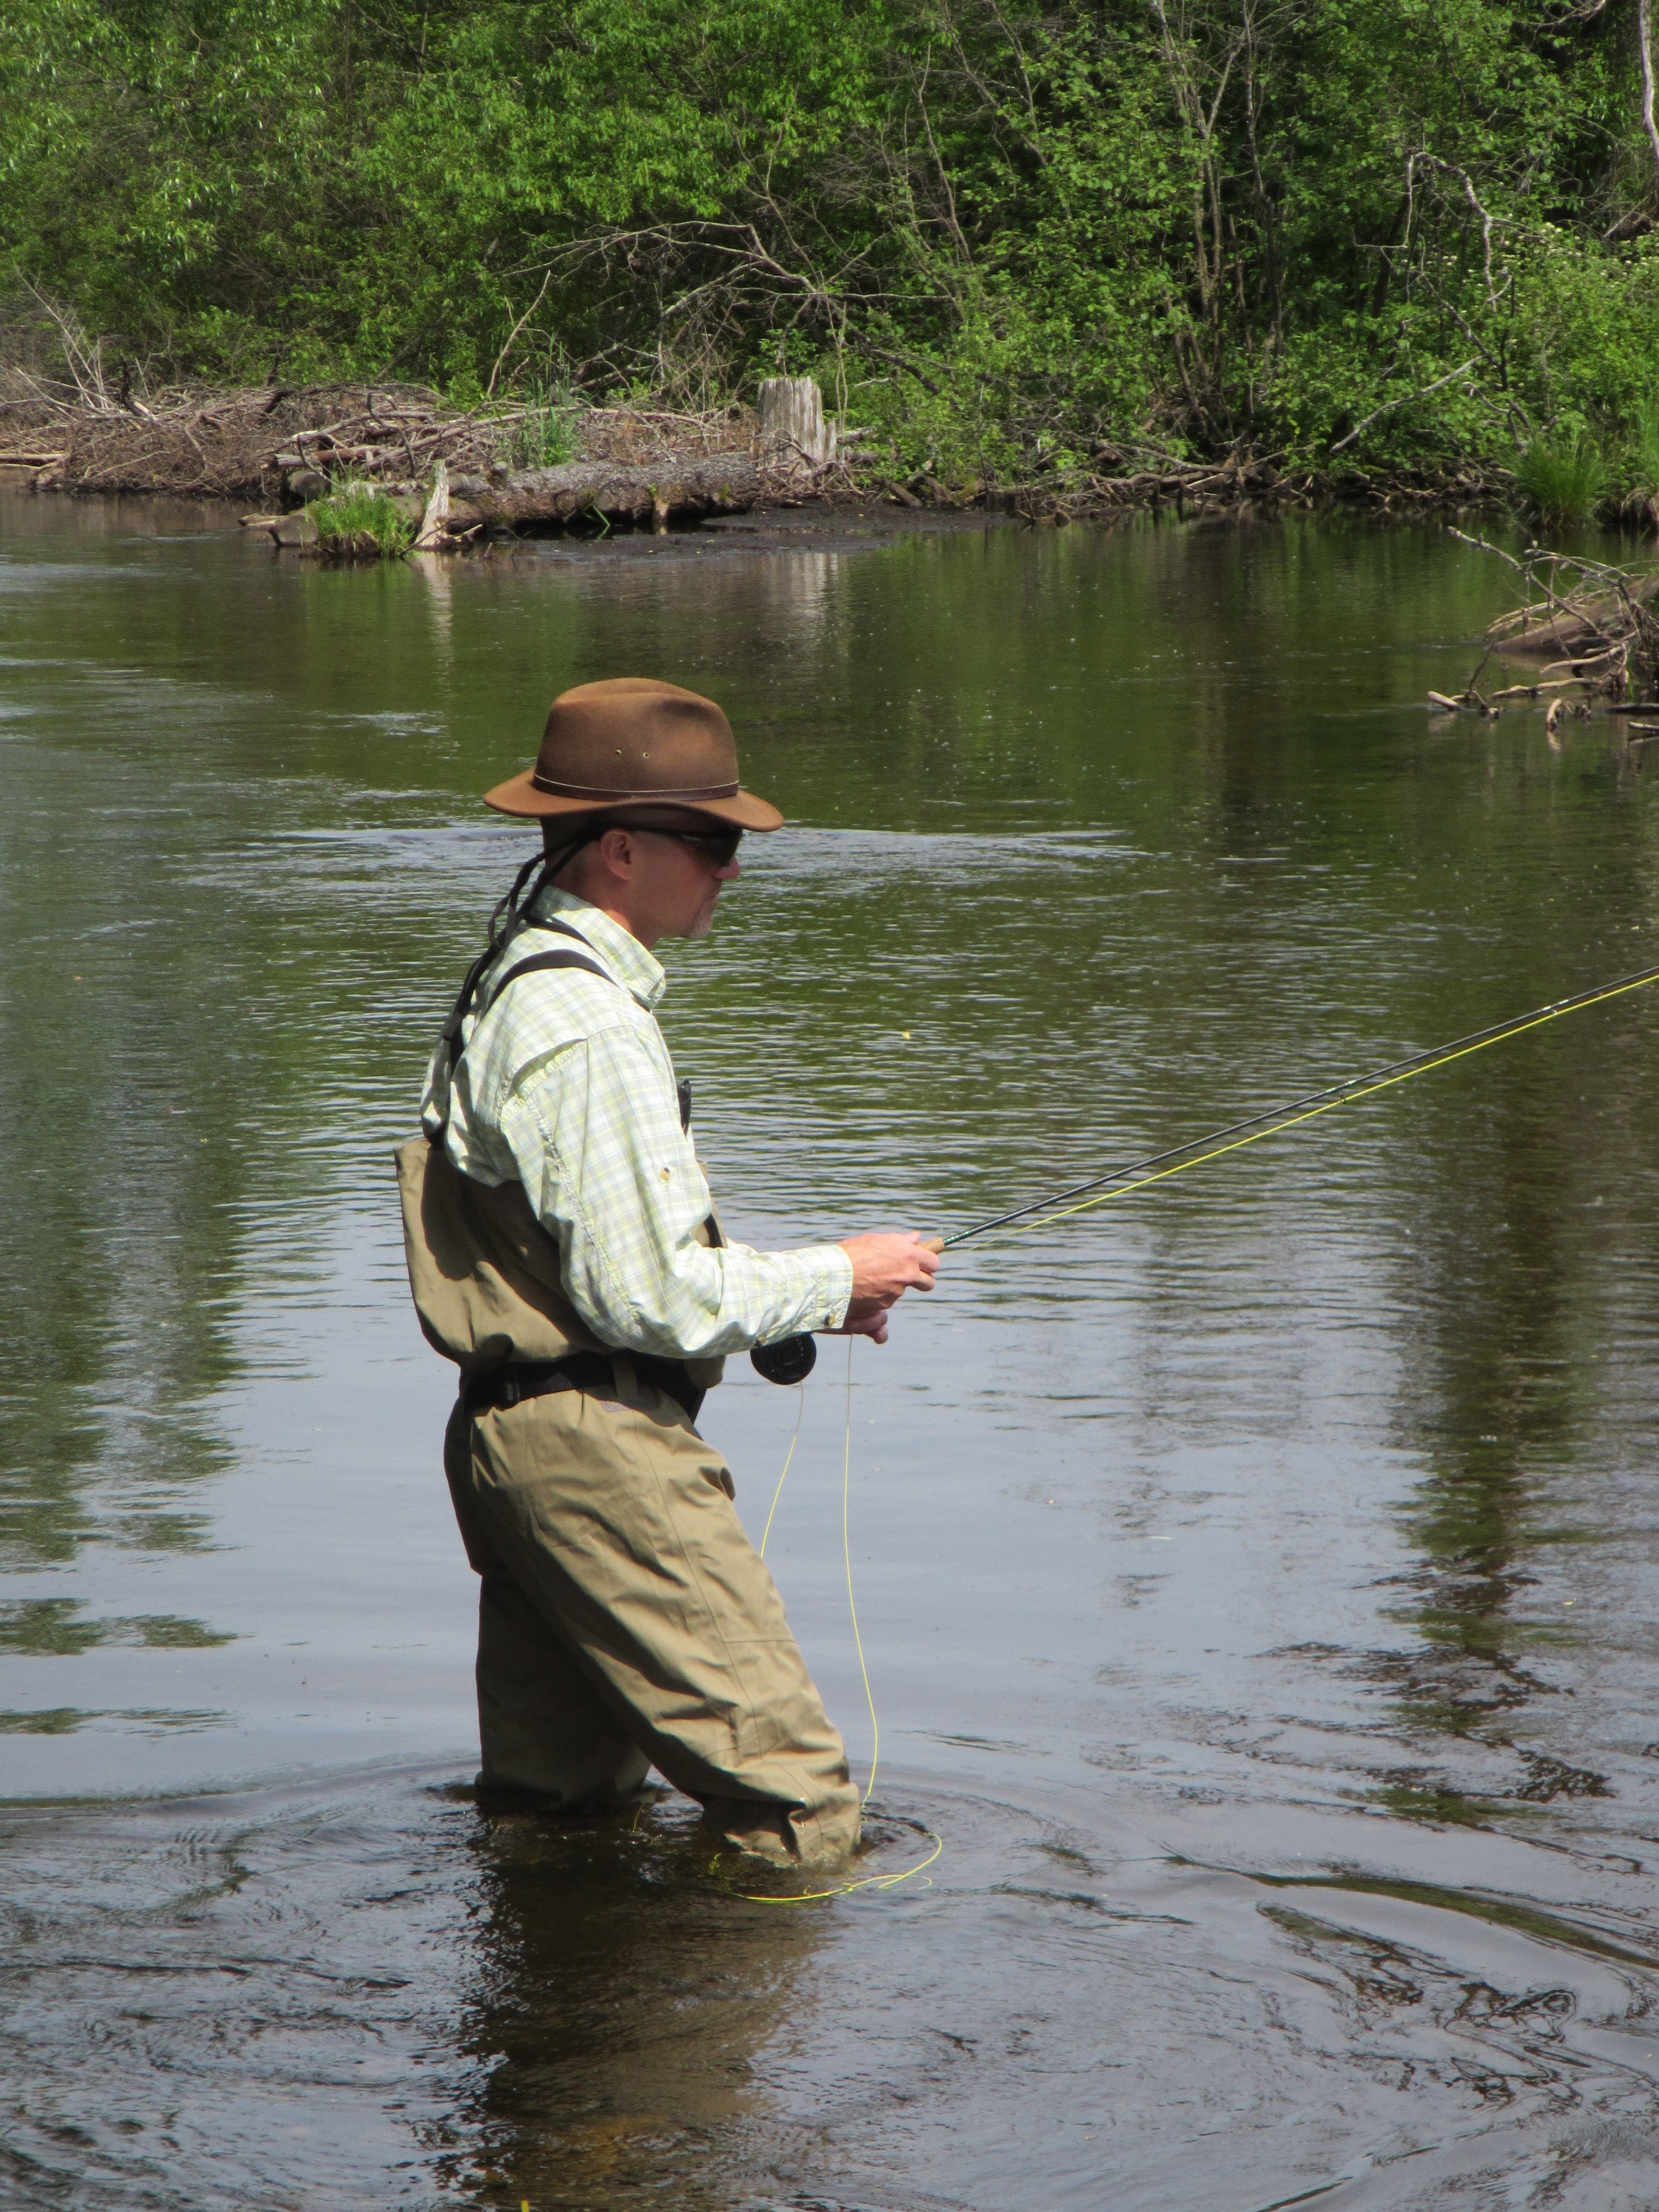 How to select and size fit over polarized sunglasses for Fly fishing sunglasses